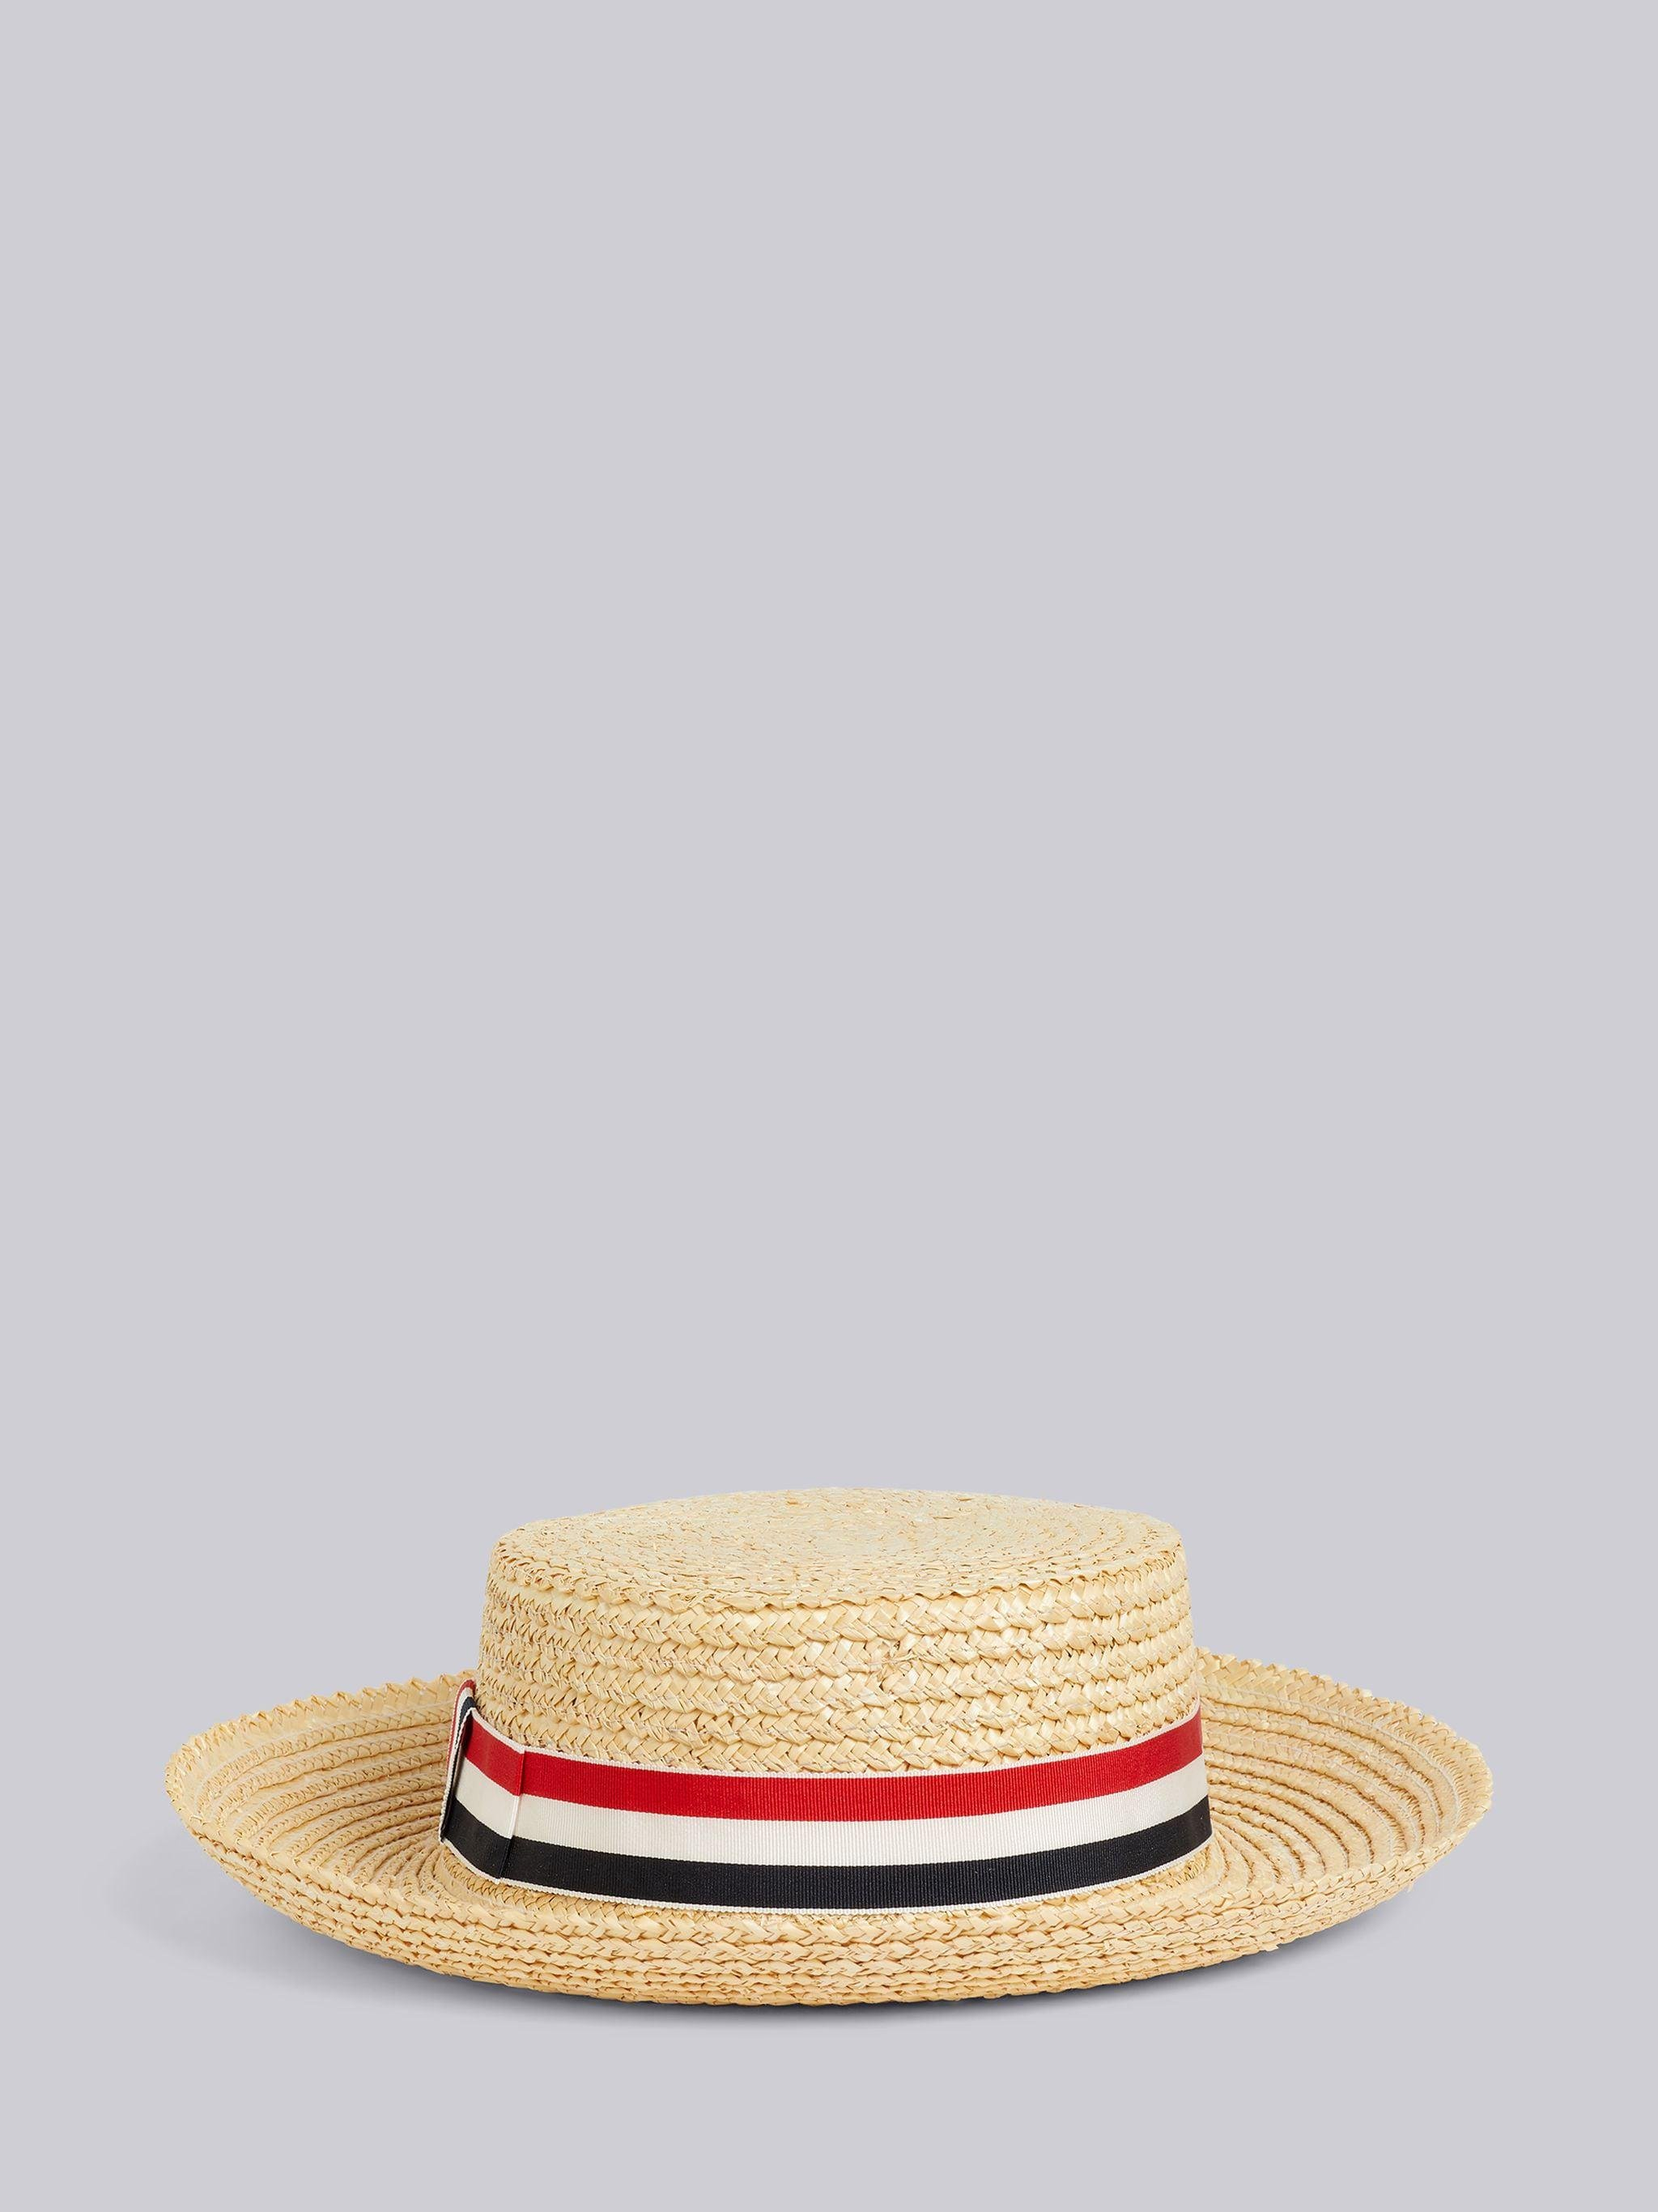 Natural Straw Wheat Braid Boater Hat